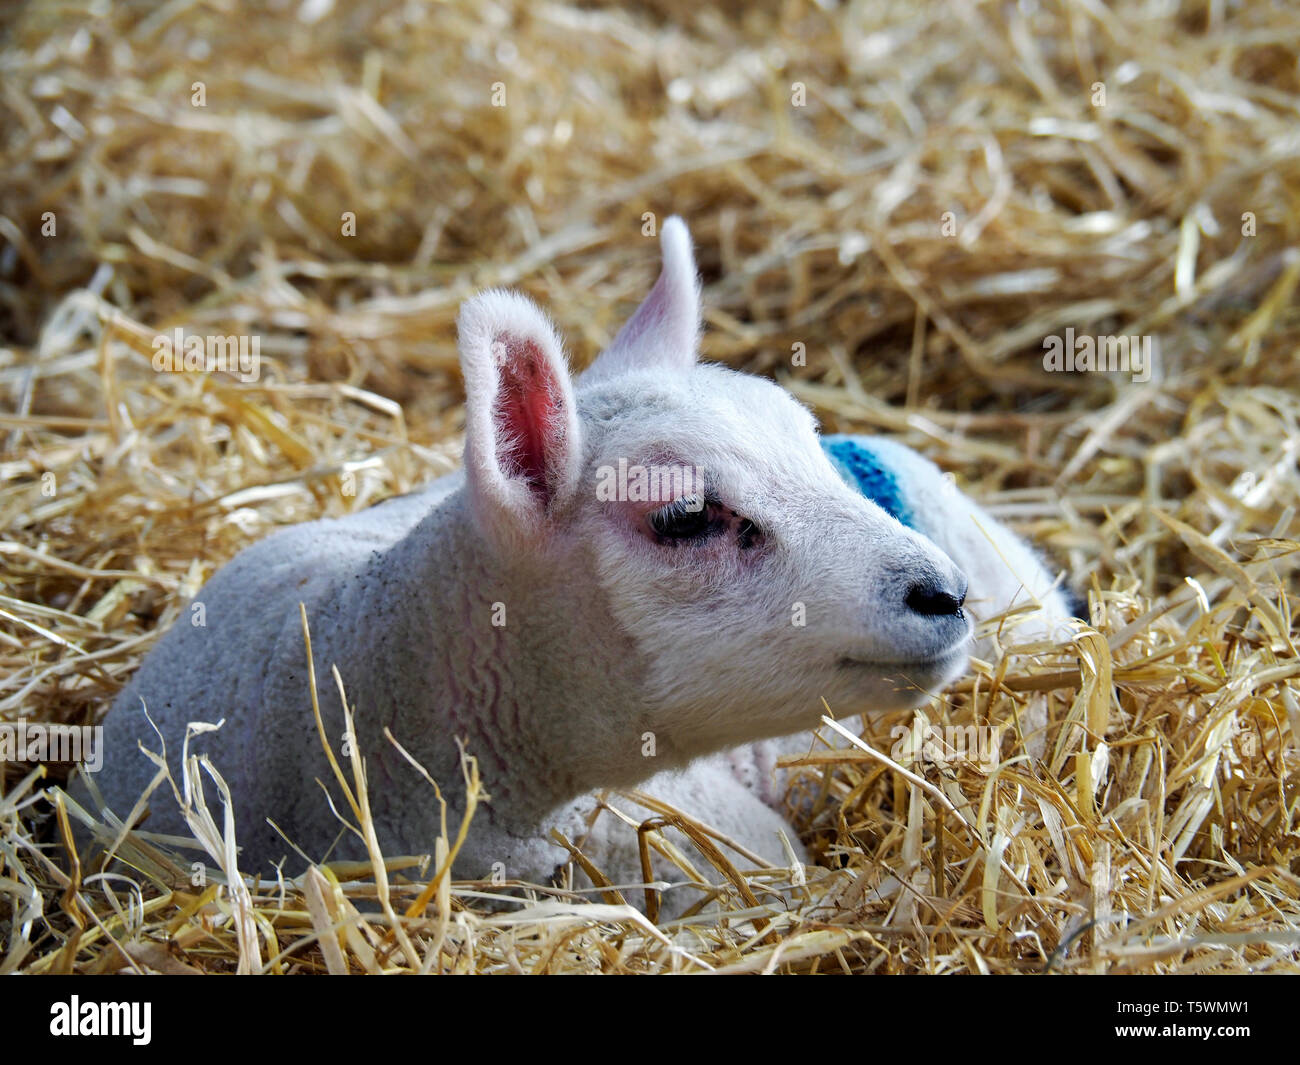 Young lamb lying on straw in a barn during lambing season. Barn lambing is easier for the farmer and provides better protection for the lambs. Stock Photo